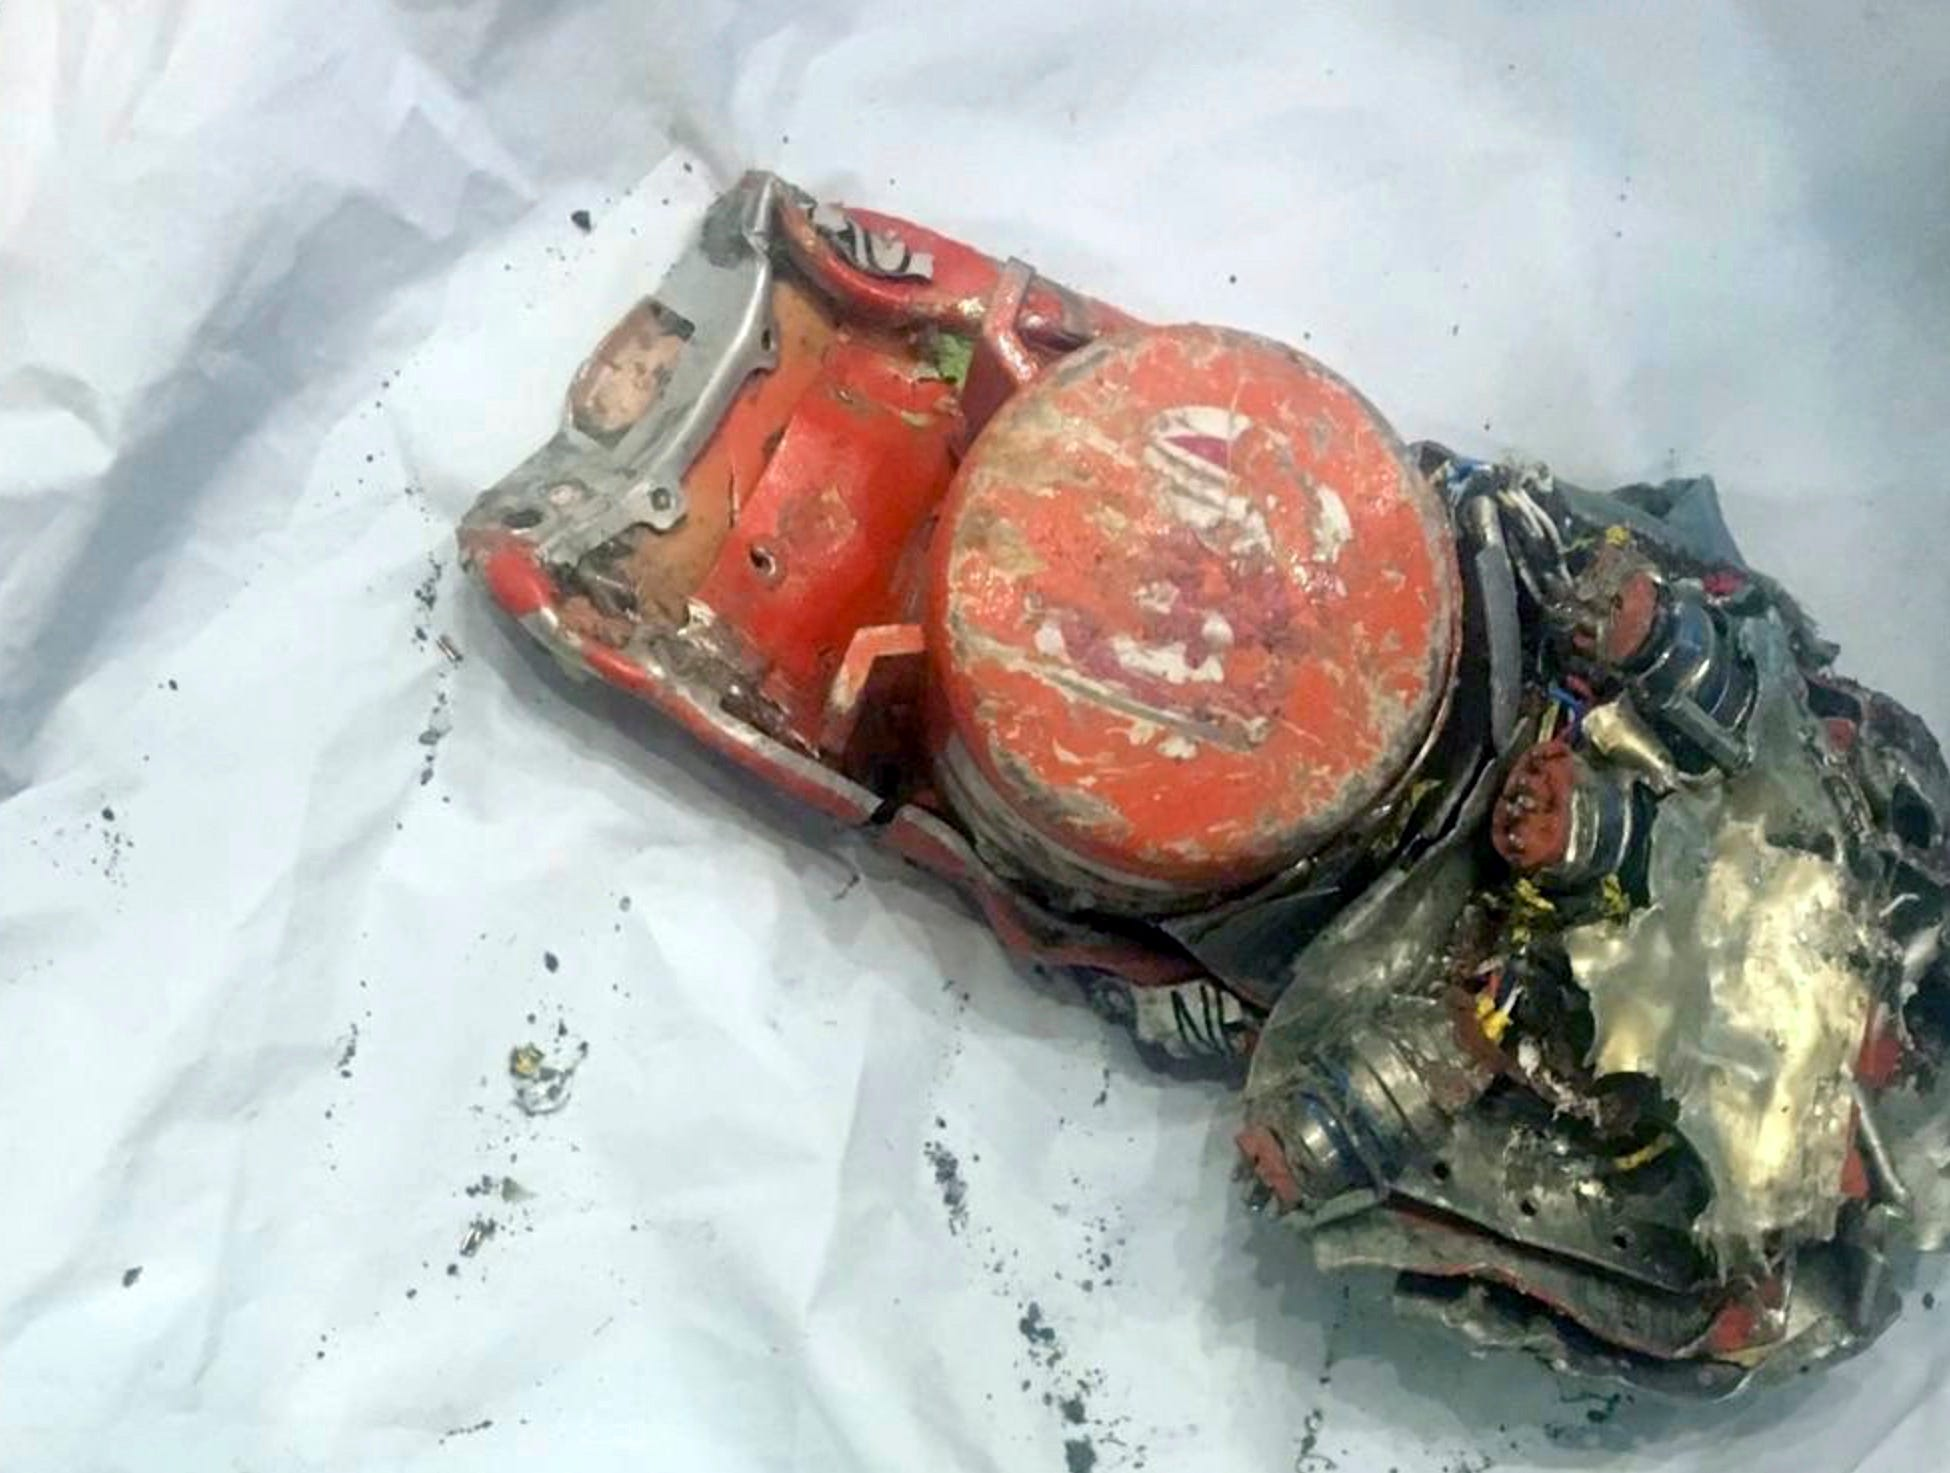 This photo provided by by the French air accident investigation authority BEA on Thursday, March 14, 2019, shows one of the black box flight recorder from the crashed Ethiopian Airlines jet, in le Bourget, north of Paris. The French air accident investigation agency has released a photo of the data recorder from the crashed Ethiopian Airlines jet. The agency, known by its French acronym BEA, received the flight's data recorder and voice recorder Thursday.